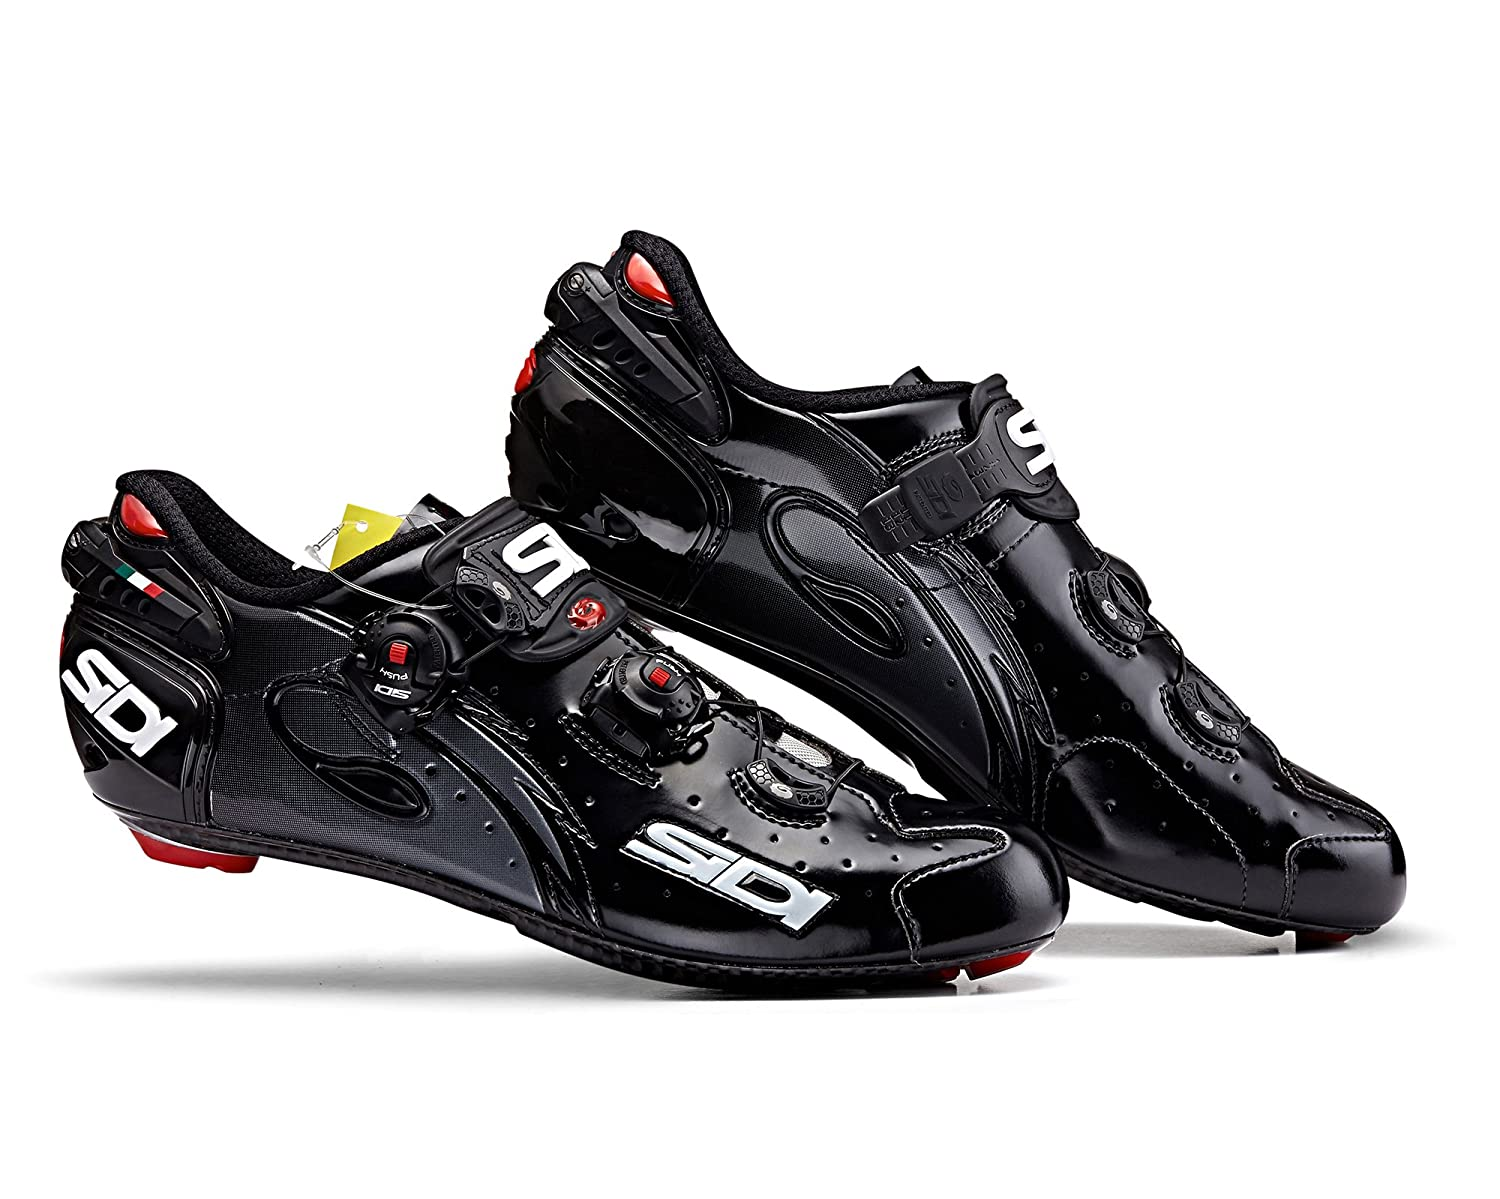 645f84b701d11 Sidi Road Wire Lacquer 2016 Cycling Shoes  Amazon.co.uk  Shoes   Bags